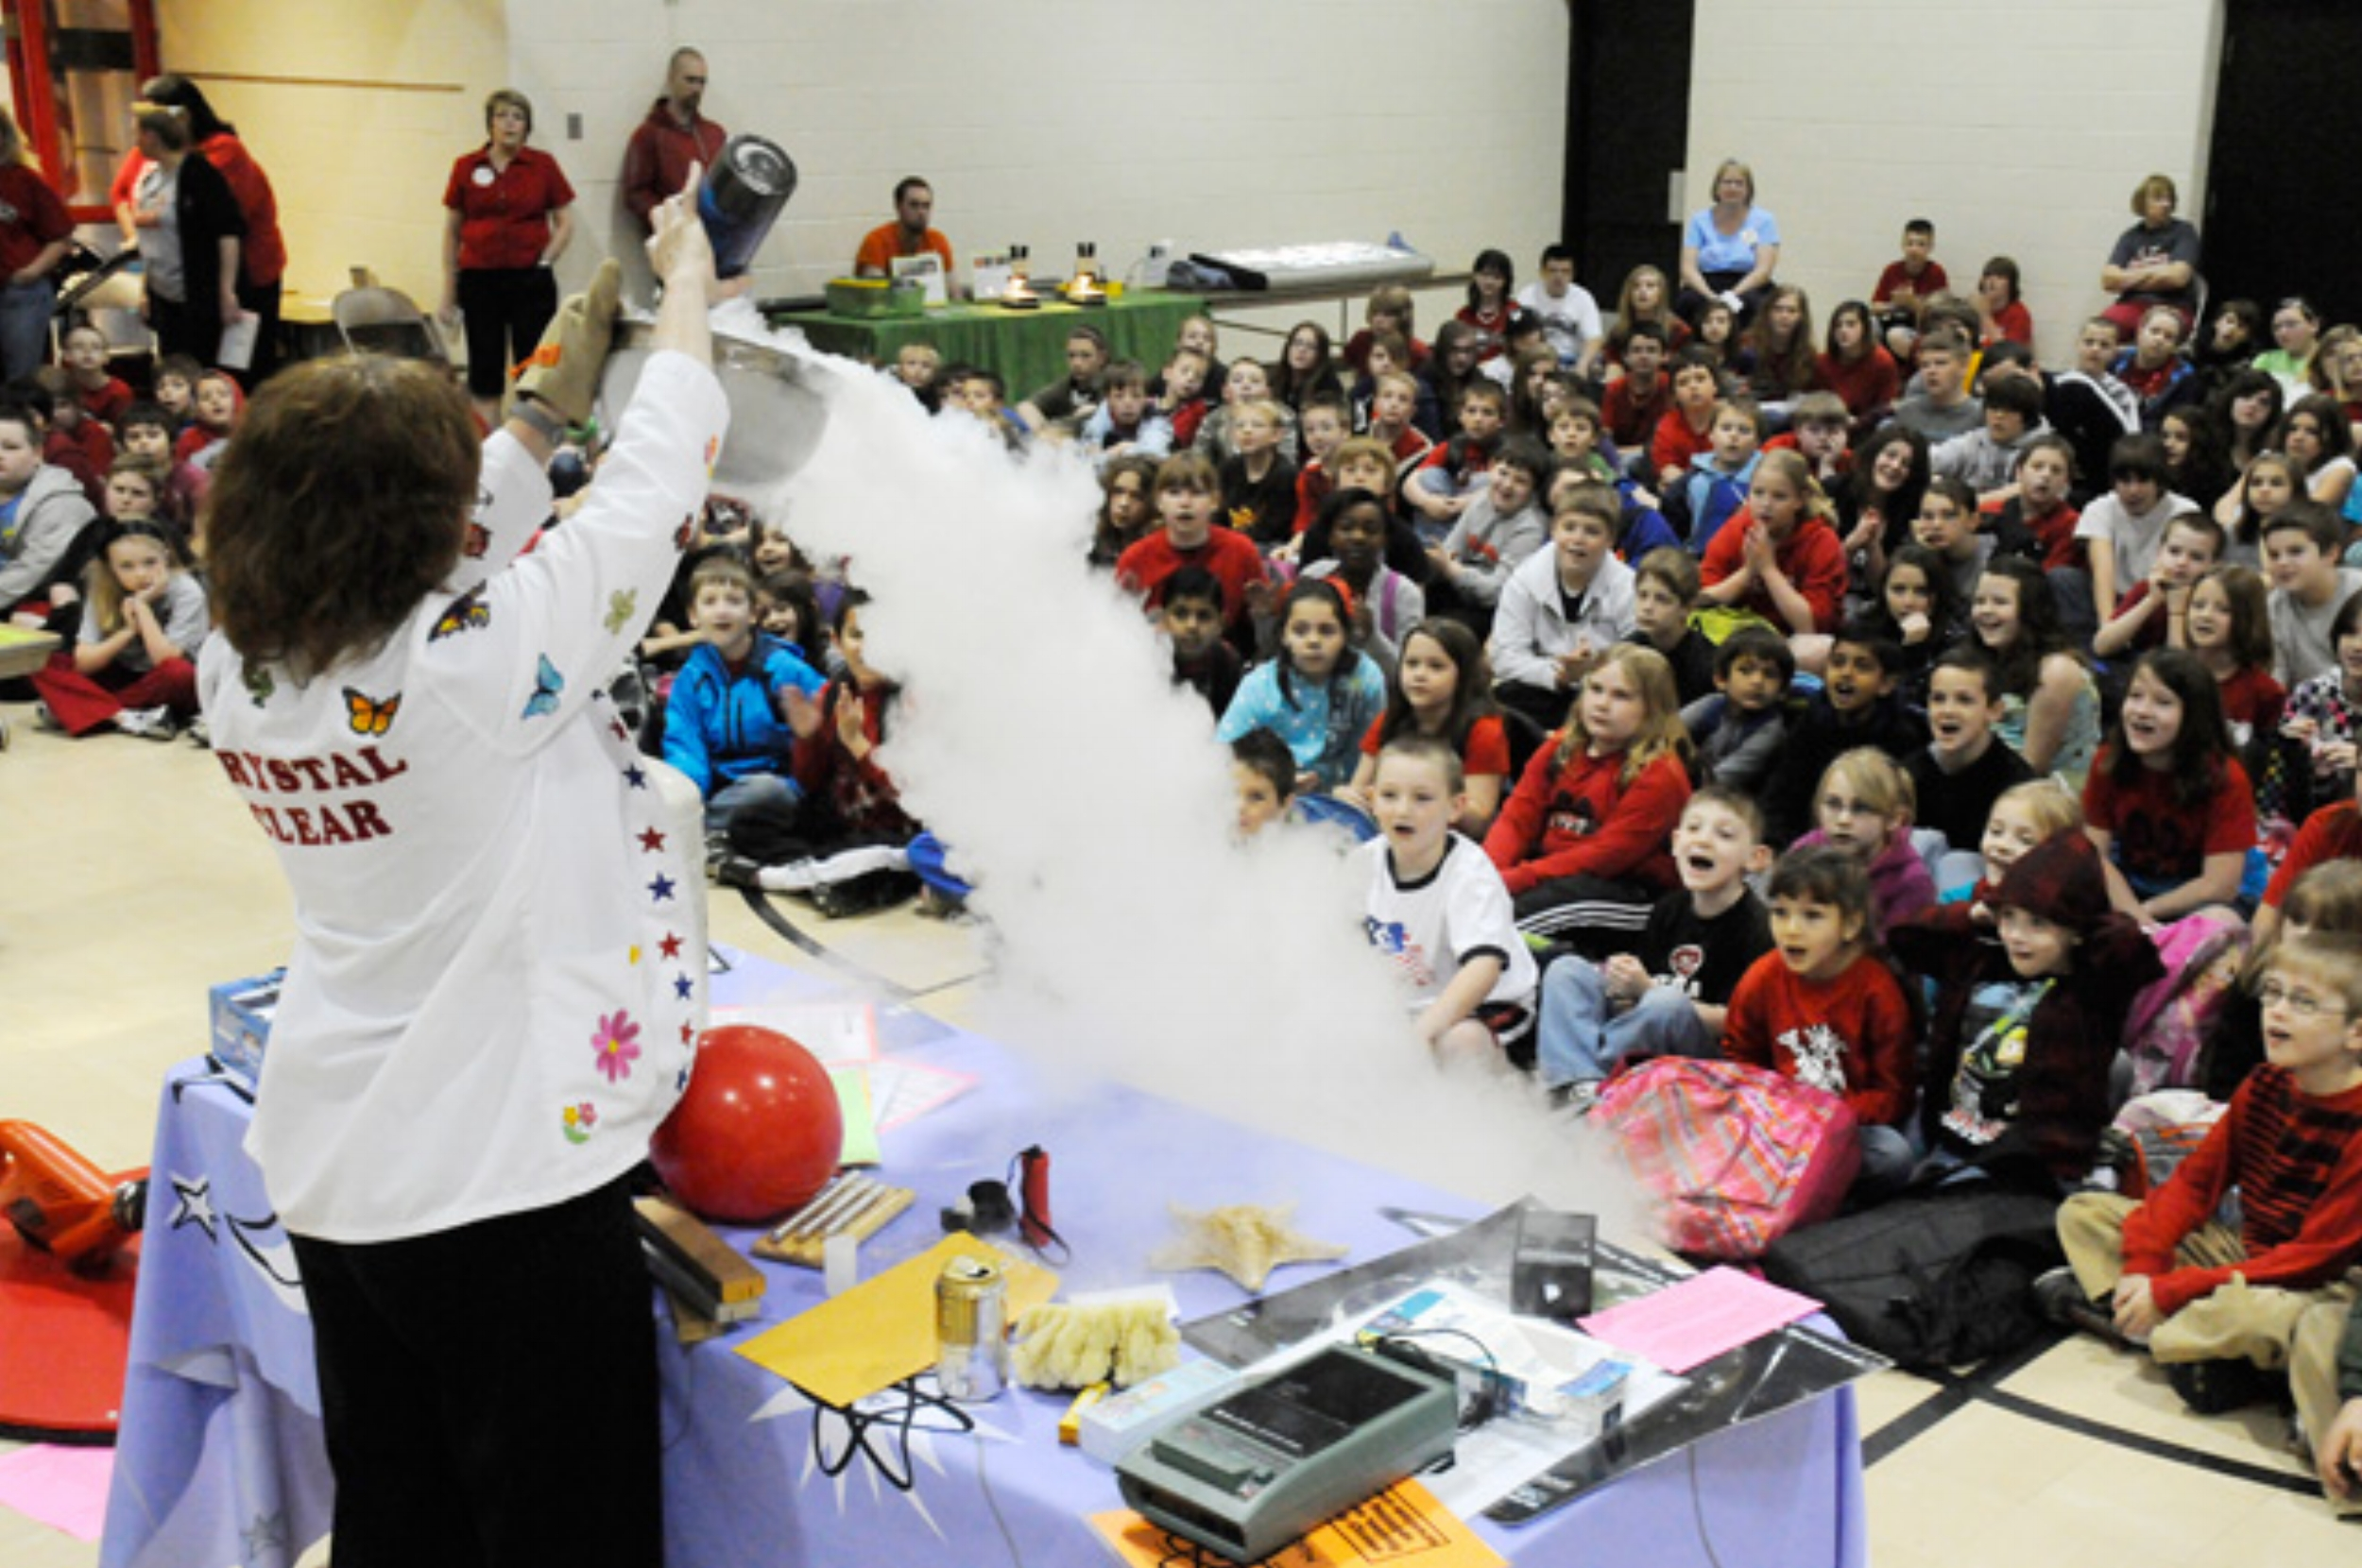 """- Skool Aid is partnering with crystalclearscience.com during the 2018-2019 school years to offer the following programs:May The Force Be With You - This program teaches big ideas in energy, forces, magnetism, electricity and motion, with an eye-popping demonstration that will leave you wanting more!Sounds Like Fun - A fast-paced program, filled with audience participation, as we learn about pitch, volume and the science of sound! Kids will learn several fun experiments they can try at home!Wonderful Water - Kids will be surprised to find out what they don't know about sinking and floating as they participate in an interactive group experiment. View the """"magical"""" demonstrations in surface tension that kids can easily reproduce at home and will have them talking bout this program all year!Weather Wonders - Sun, air, water…and so much more! Awesome demonstrations of air pressure, lightning and thunder will jumpstart kids' understanding of the world around them. Experiments in Bernoulli's principle, static electricity, and the water cycle inspire the meteorologist in all!Steam Powered Recycling - Empower kids by letting them know they can CHANGE THE WORLD! This program teaches students where things come from and where they go. Electromagnets, generators, lasers and change of state demonstrations help kids see the science, technology, engineering and math that go on behind the scenes.Math and Science Connection - A bed of nails, a wondrous windbag, and magic divers will teach your kids that science and math are the best of friends! The power of measurements and and numbers come to life during this program. Kids will be excited to realize they already know many of the math and science connections around us!"""